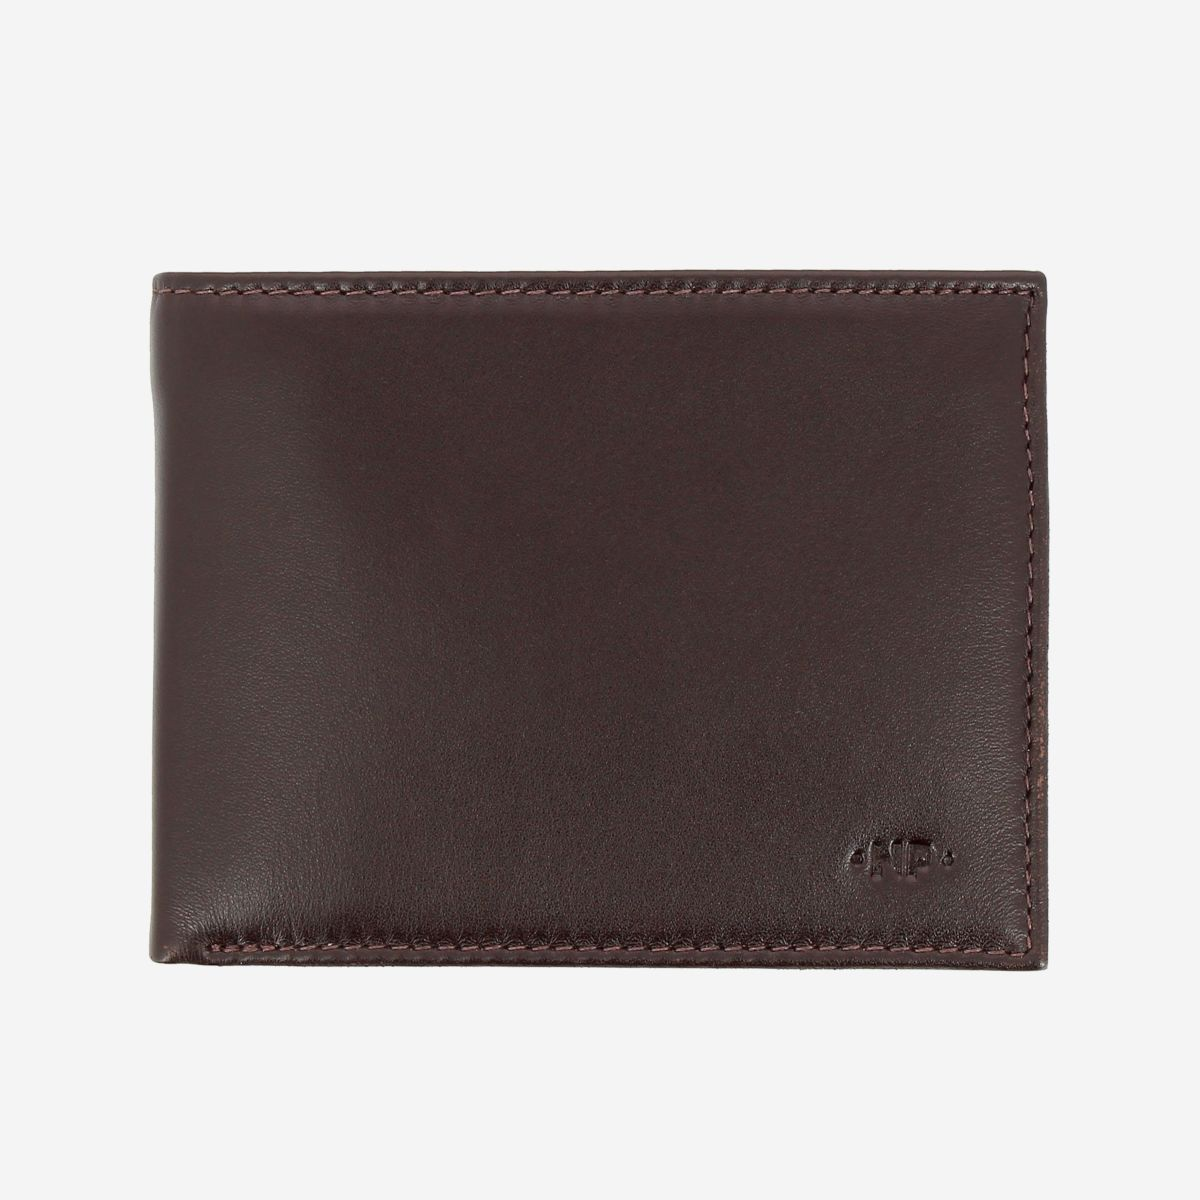 NUVOLA PELLE Elegant Mens Leather Wallet With Coin Coin Purse - Dark Brown